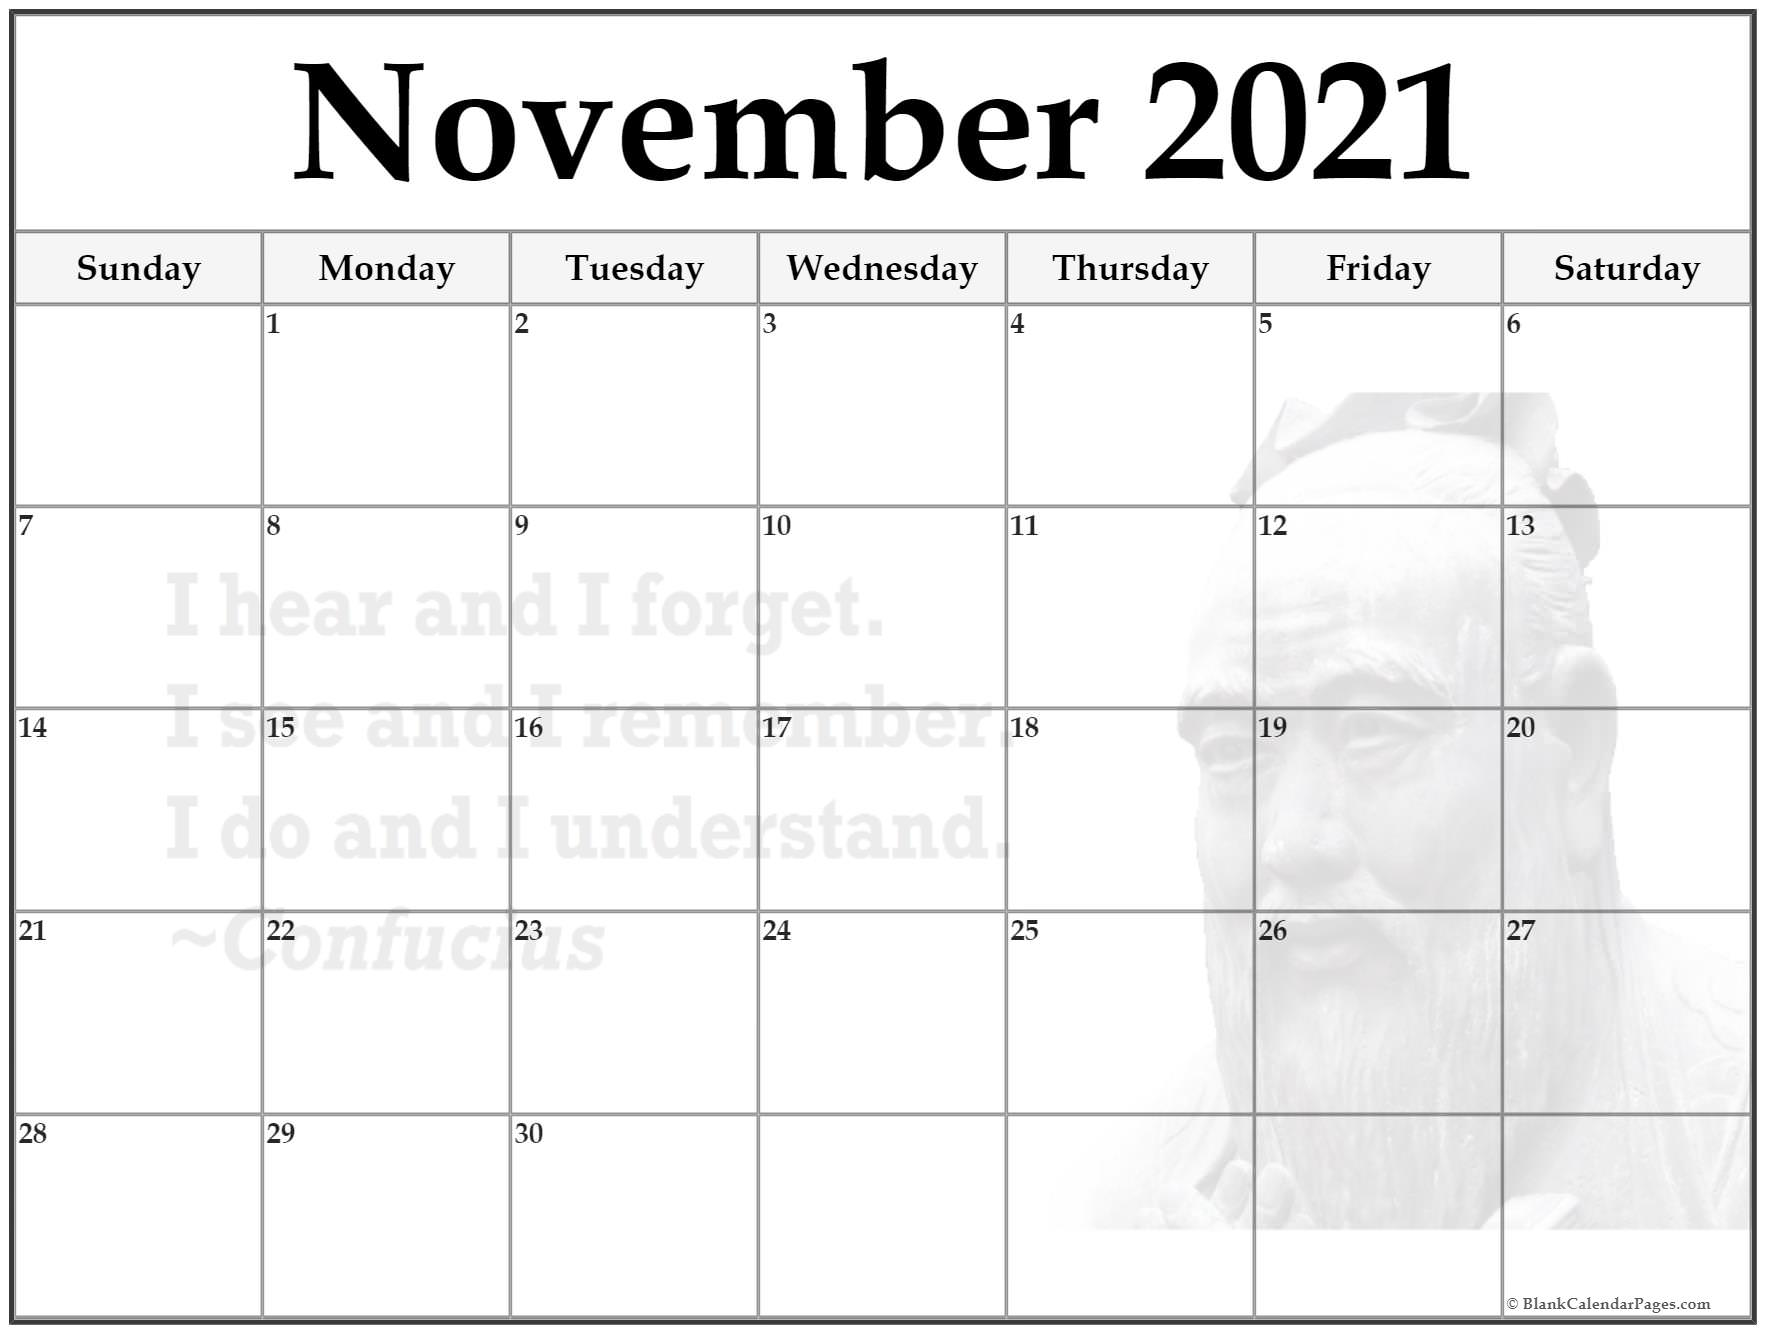 November 2018 monthly calendar template. I hear and I forget.I see and I remember.I do and I understand.~Confucius